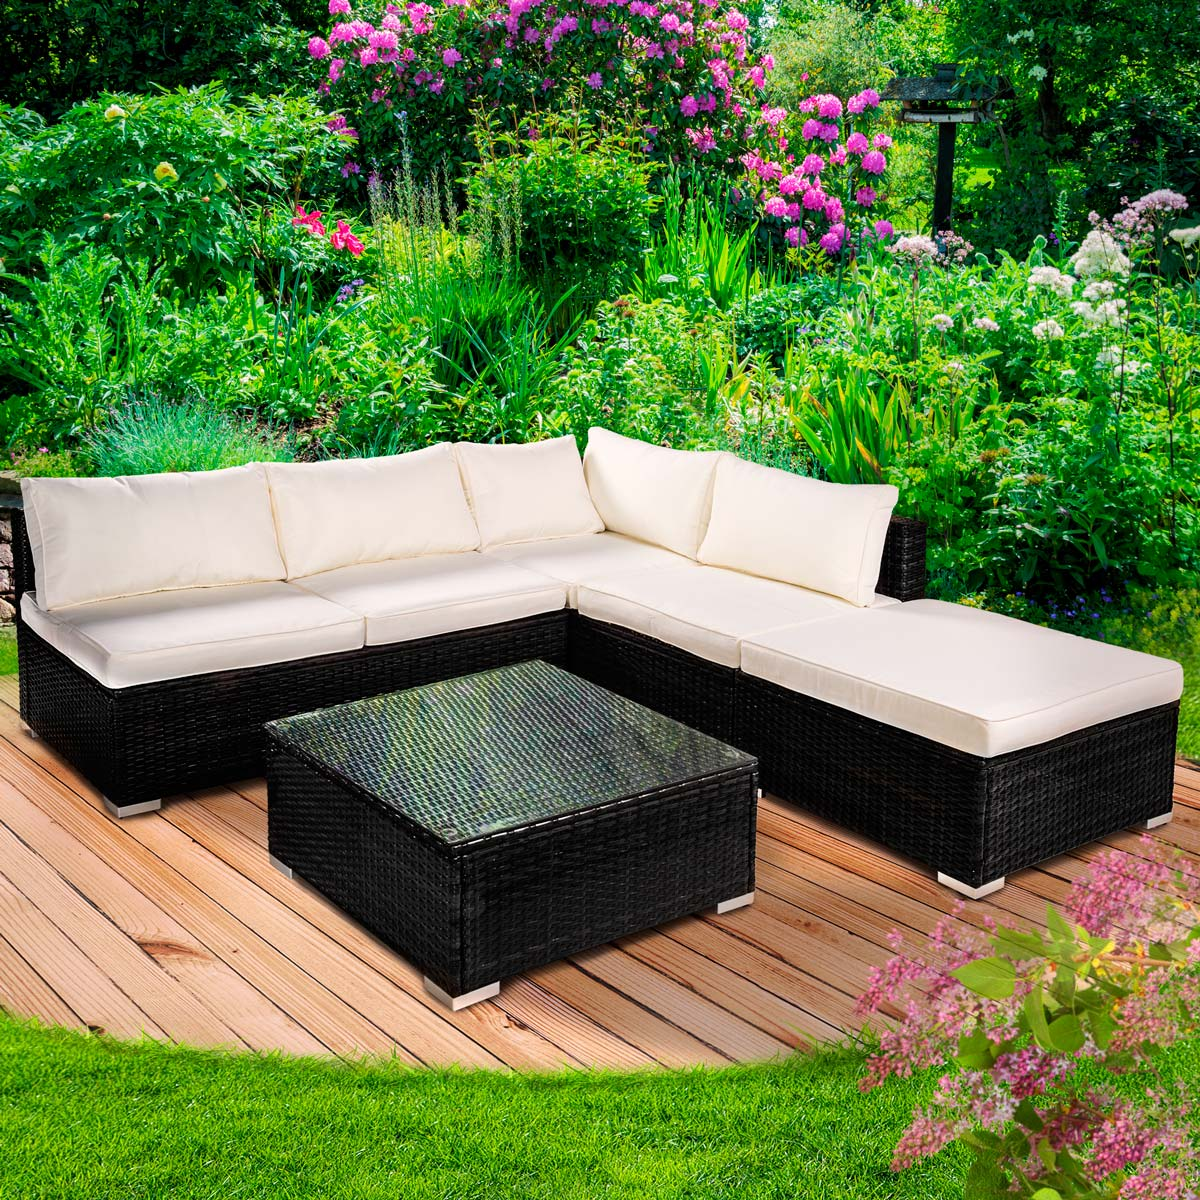 poly rattan gartenm bel lounge m bel sitzgarnitur gartengarnitur sitzgruppe sofa ebay. Black Bedroom Furniture Sets. Home Design Ideas